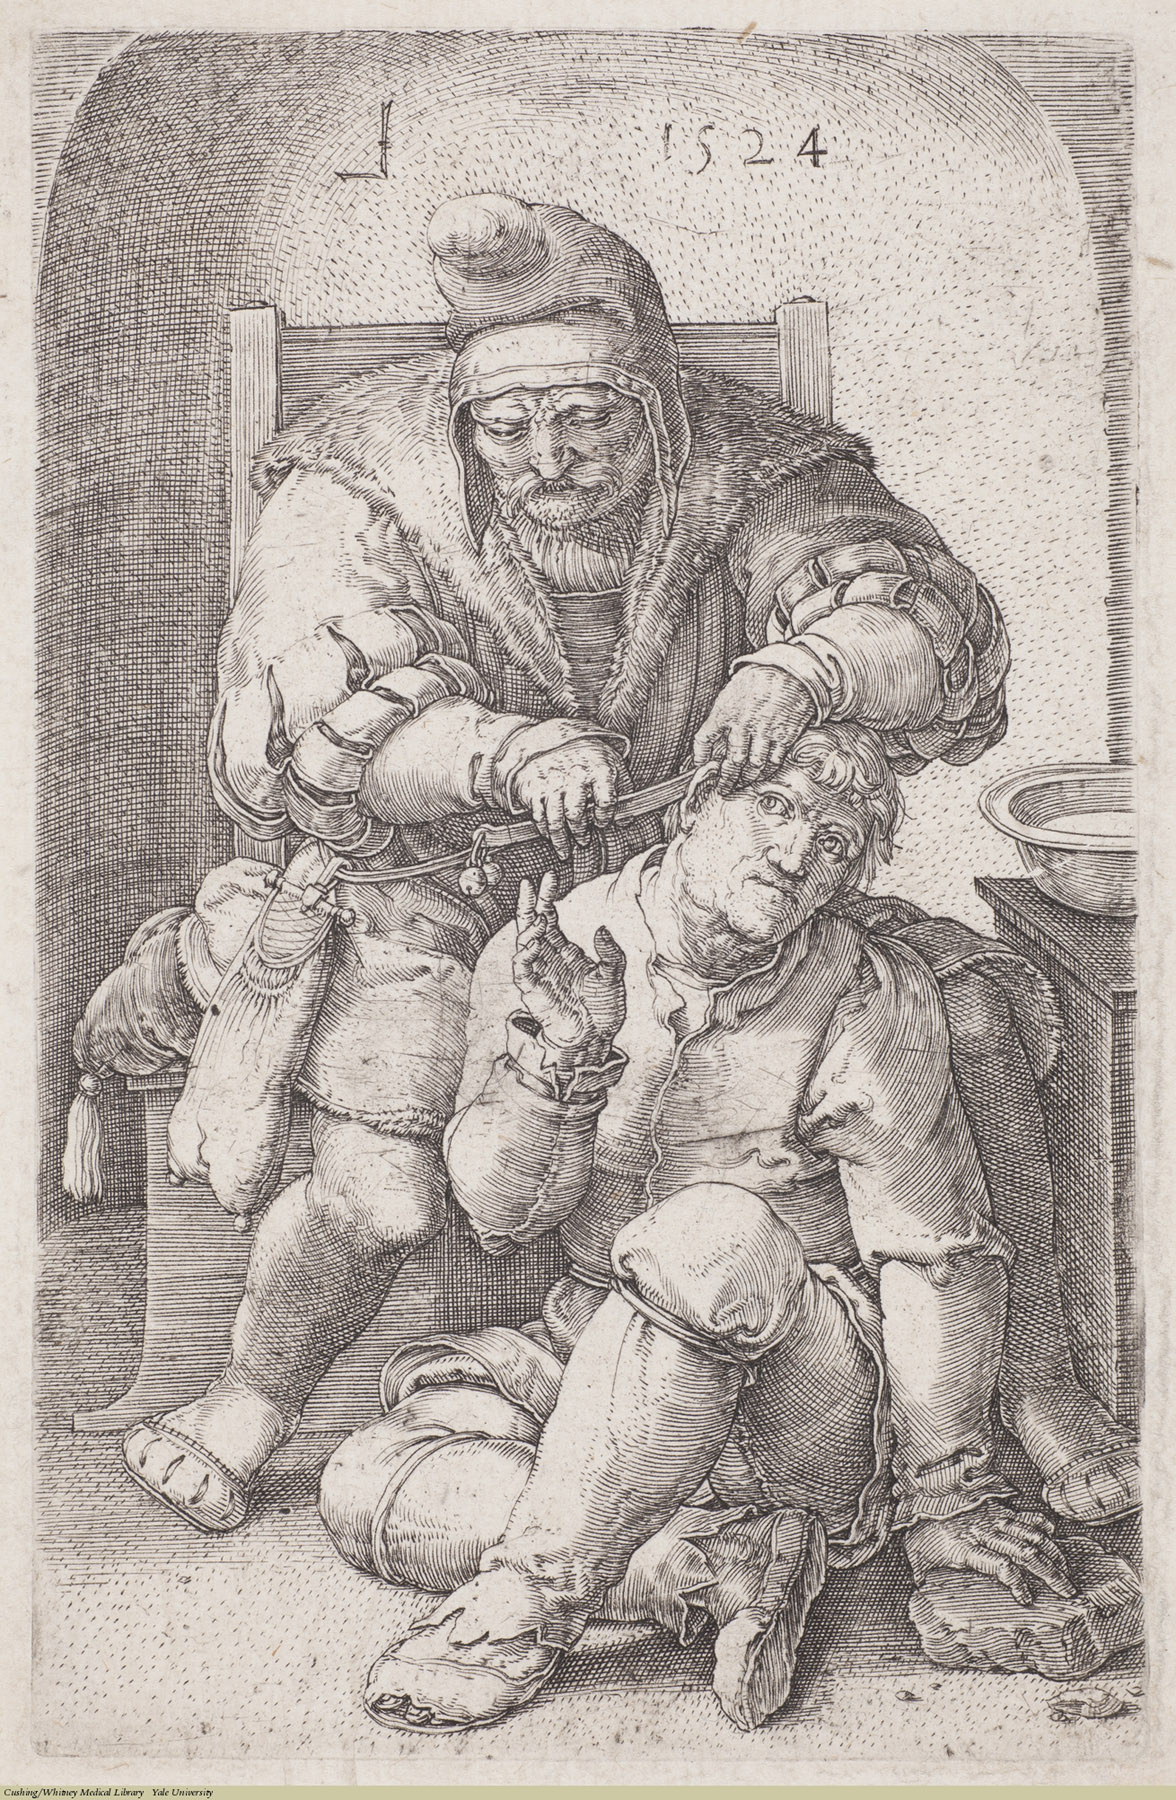 The Surgeon. Lucas van Leyden, Laid, 1524. Subject: Surgeons & Surgery, Rural Medicine.